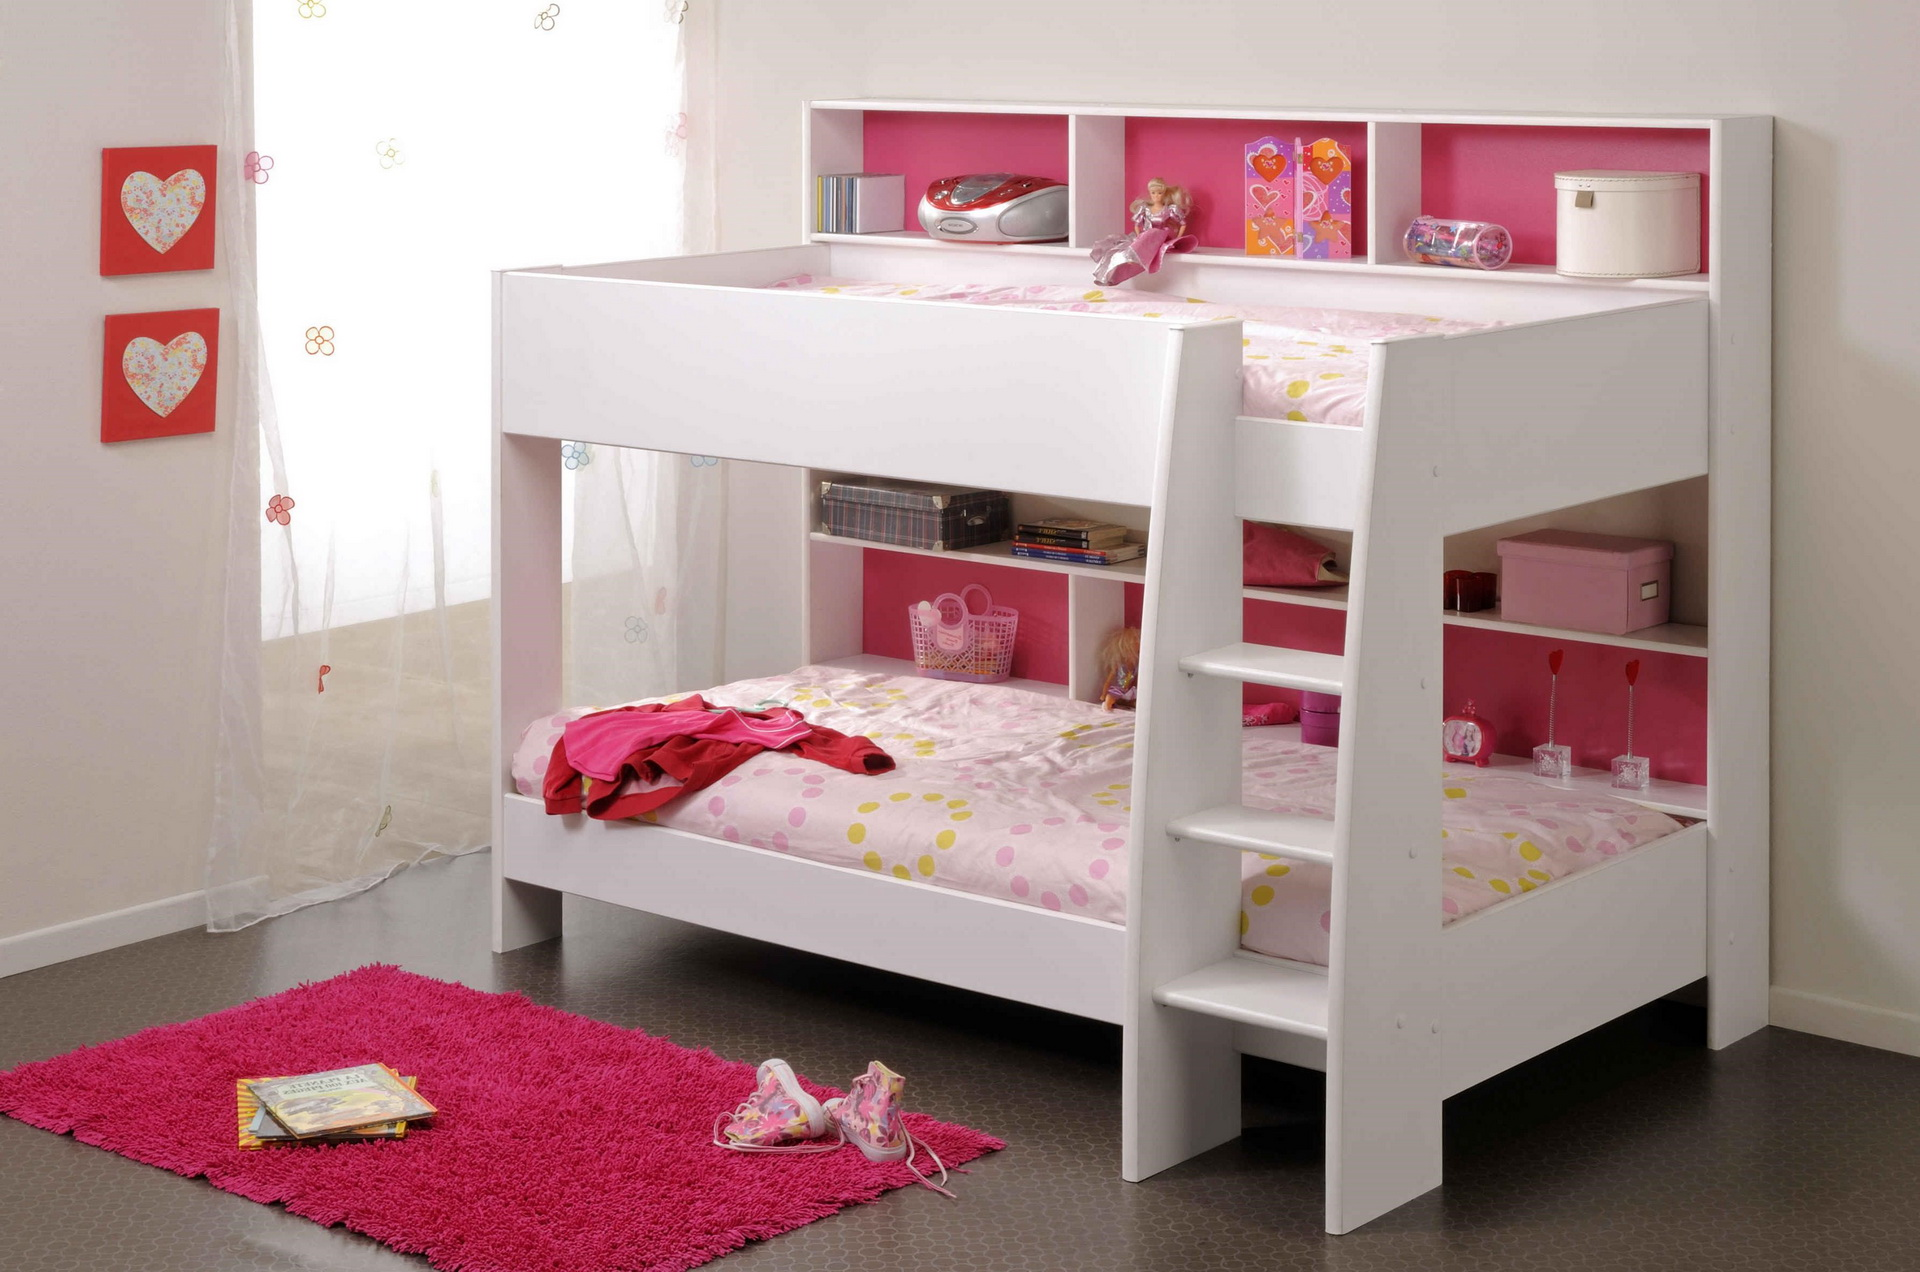 Rooms to go bedroom furniture for kids a proud bedroom for Furniture for rooms